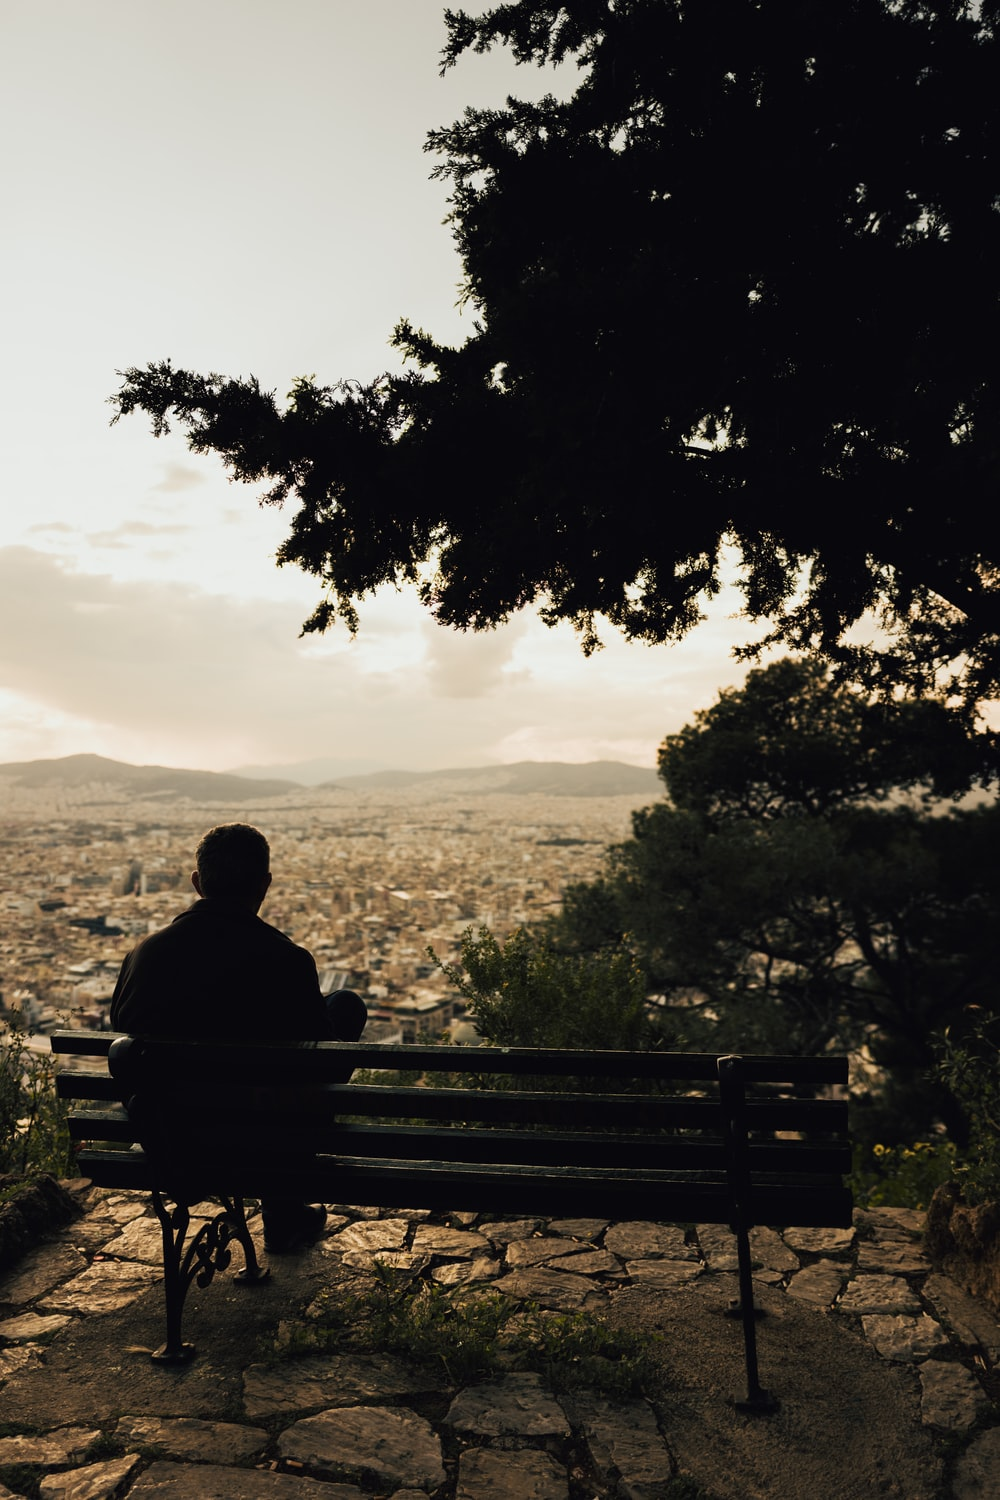 silhouette of man sitting on bench during sunset